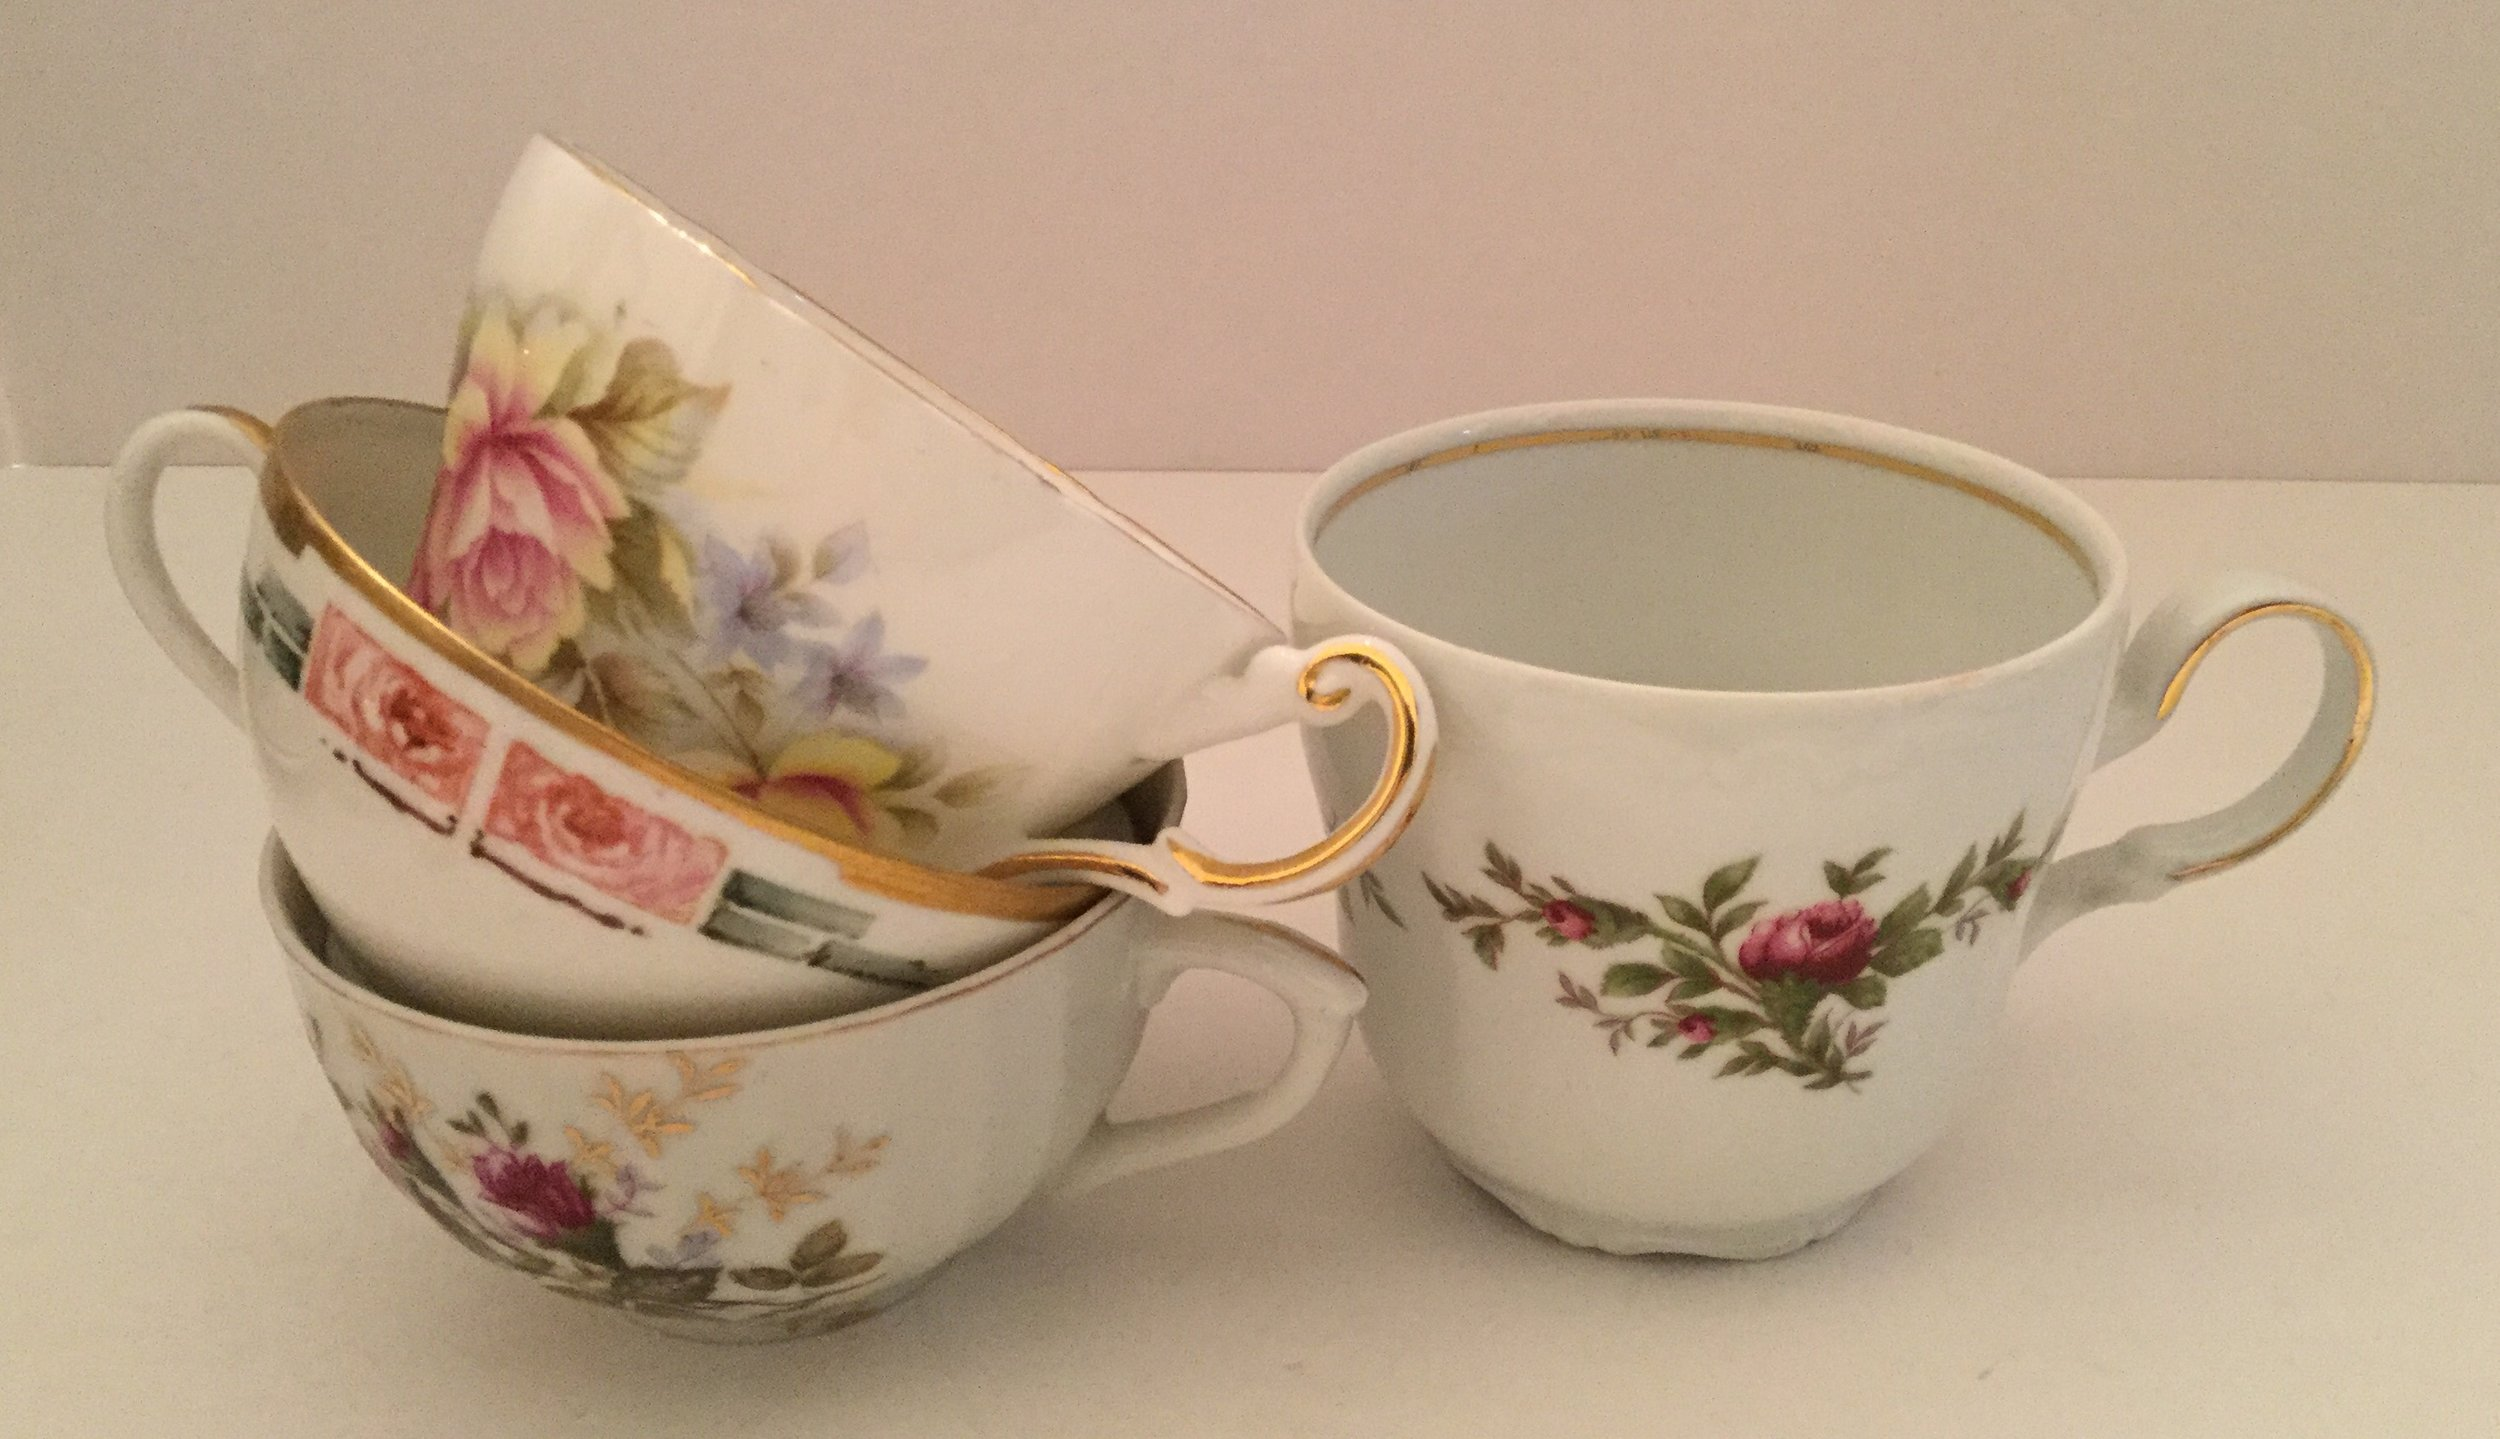 Orphan cups ... large cup on the right is Traditions Fine China by Johann Haviland China Corporation